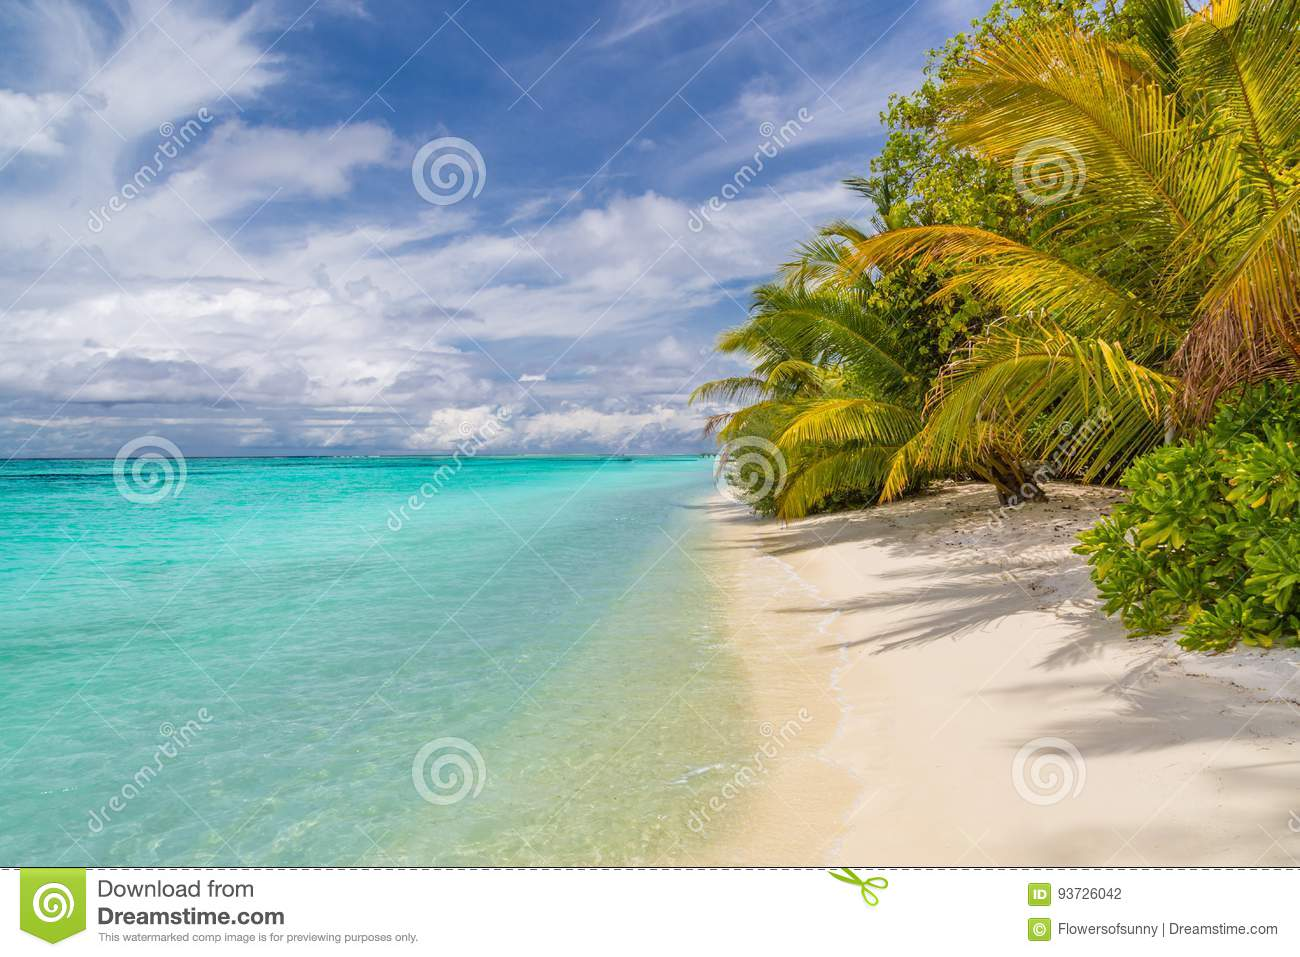 Exotic Tropical Beach Landscape For Background Or Wallpaper Design Of Summer